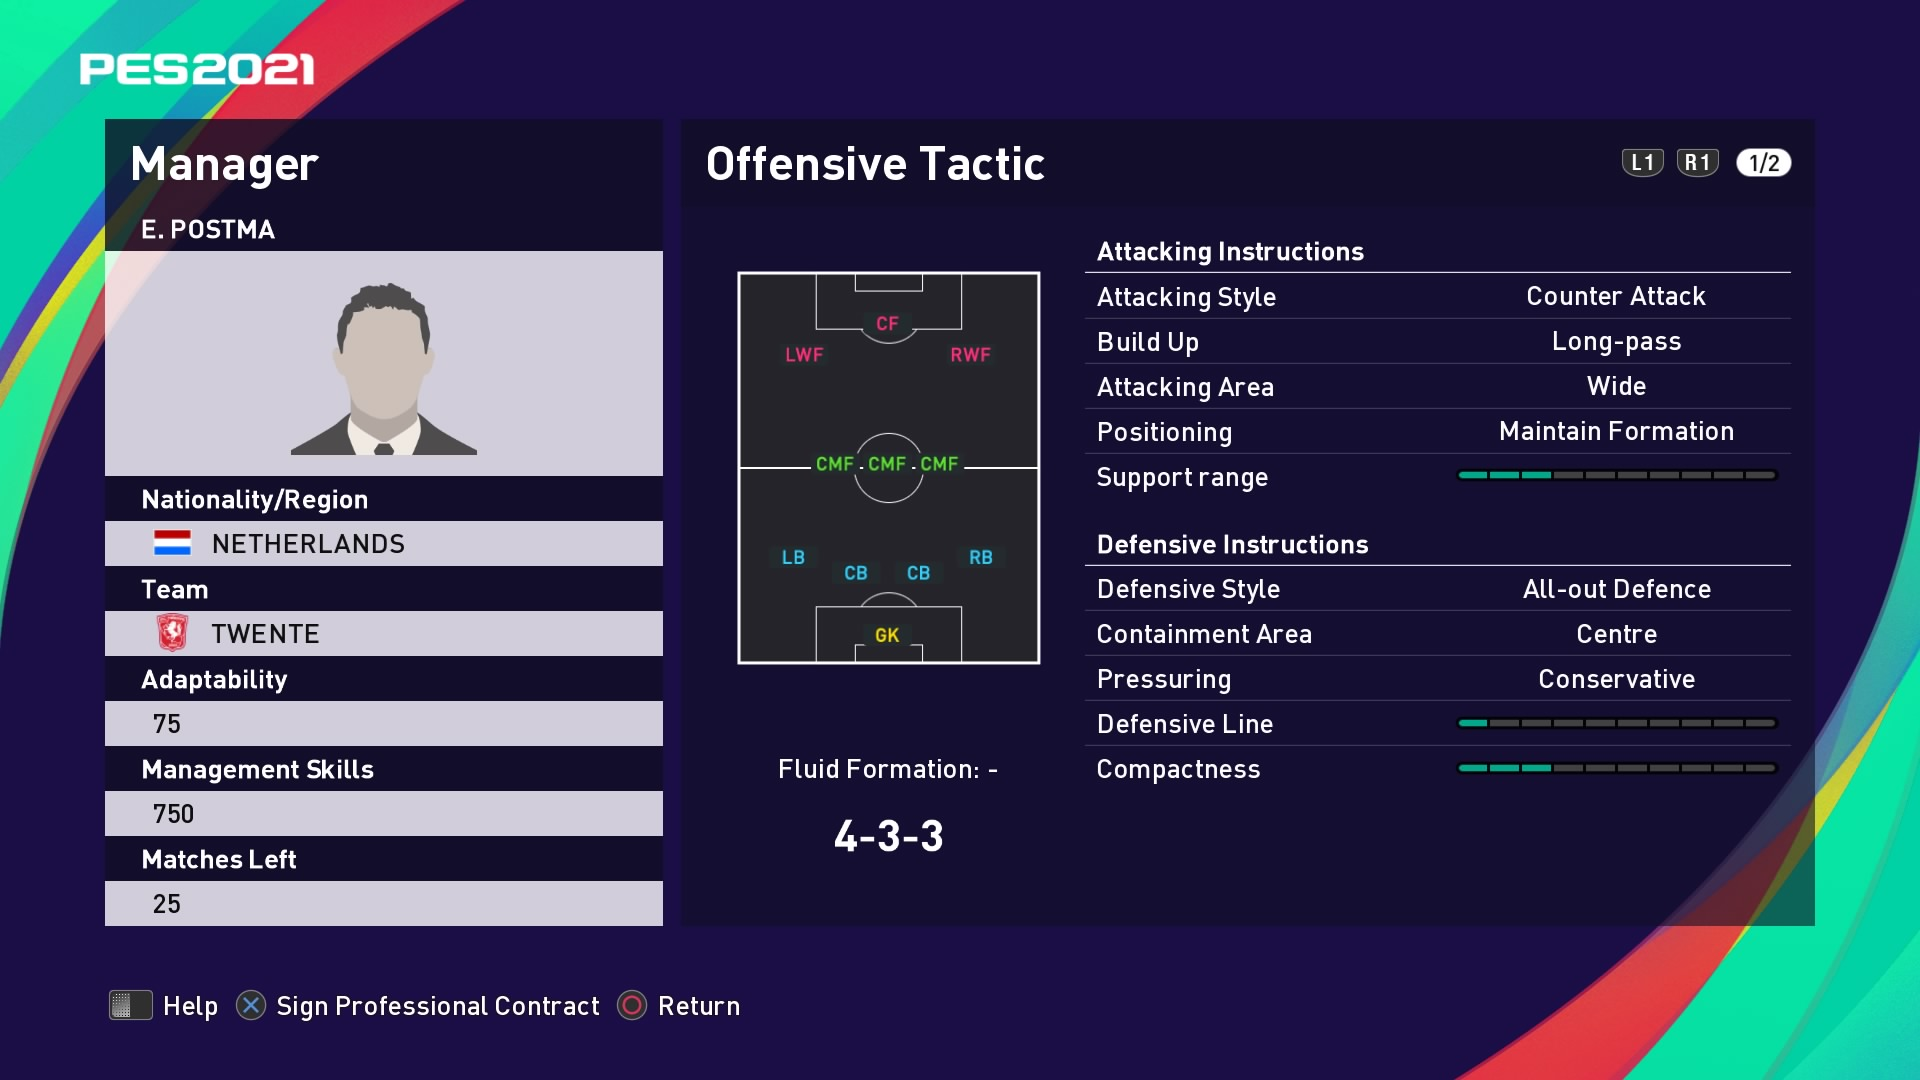 E. Postma (Ron Jans) Offensive Tactic in PES 2021 myClub